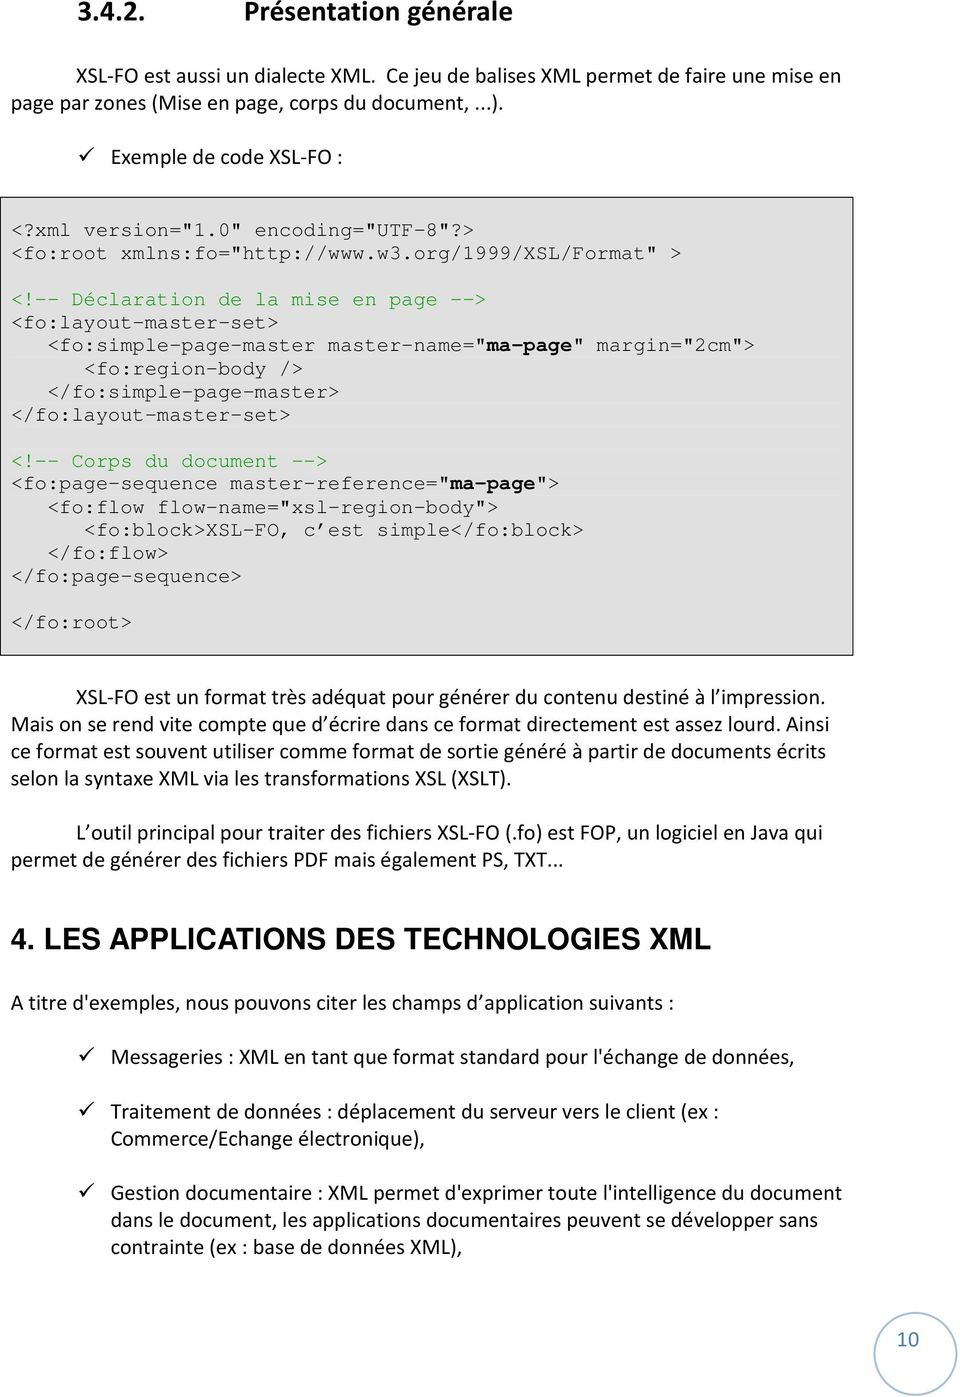 "-- Déclaration de la mise en page --> <fo:layout-master-set> <fo:simple-page-master master-name=""ma-page"" margin=""2cm""> <fo:region-body /> </fo:simple-page-master> </fo:layout-master-set> <!"